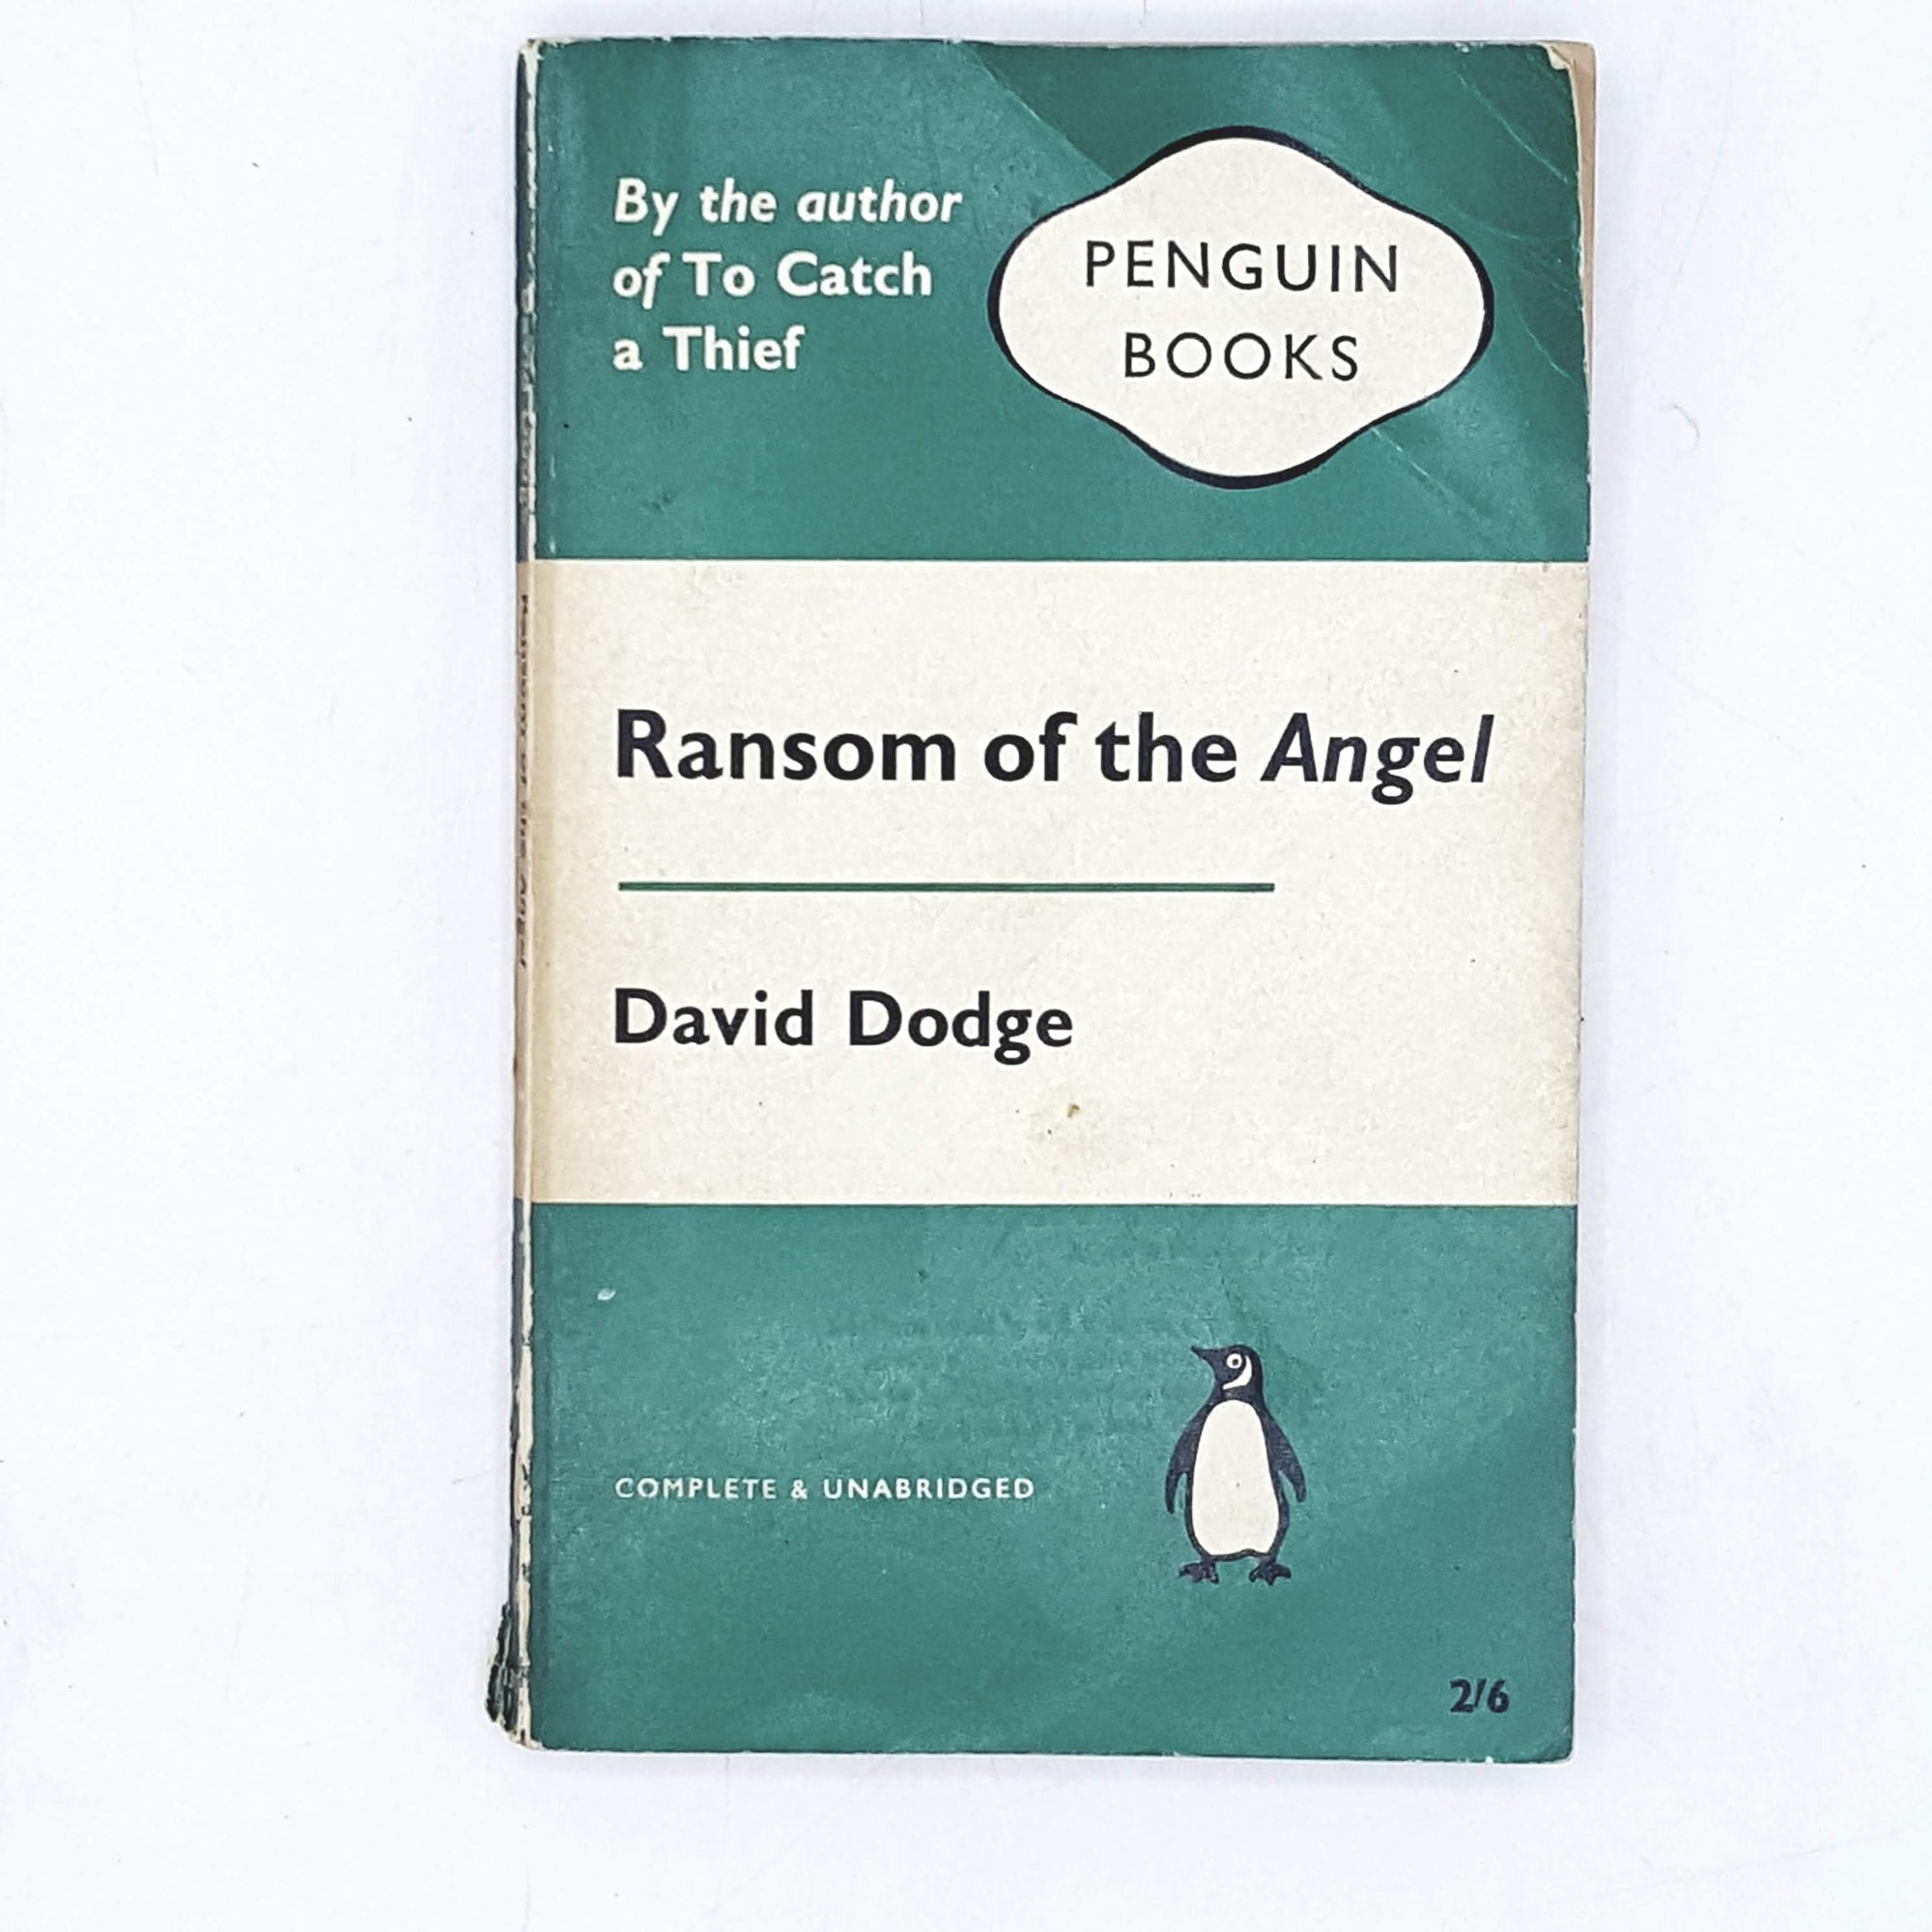 Ransom of the Angel by David Dodge 1961